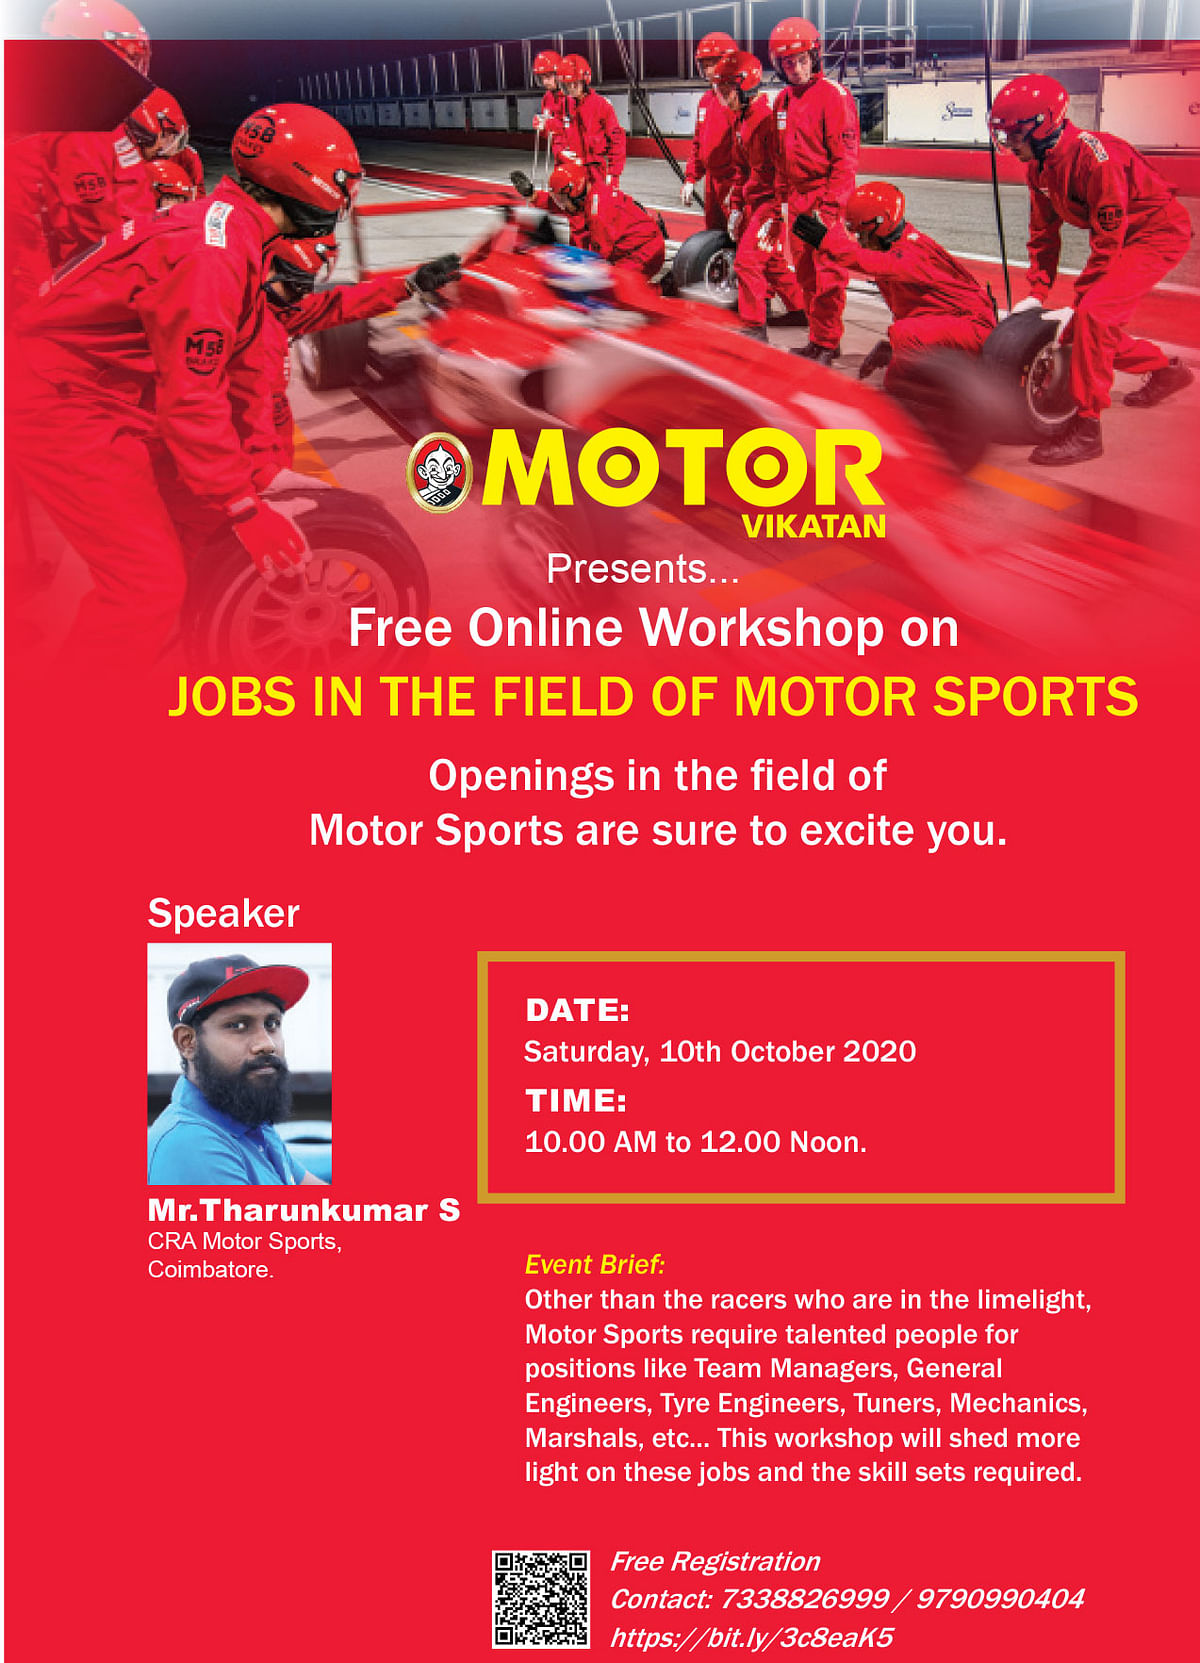 MOTOR VIKATAN : Free Online Workshop on Jobs in the field of Motor Sports